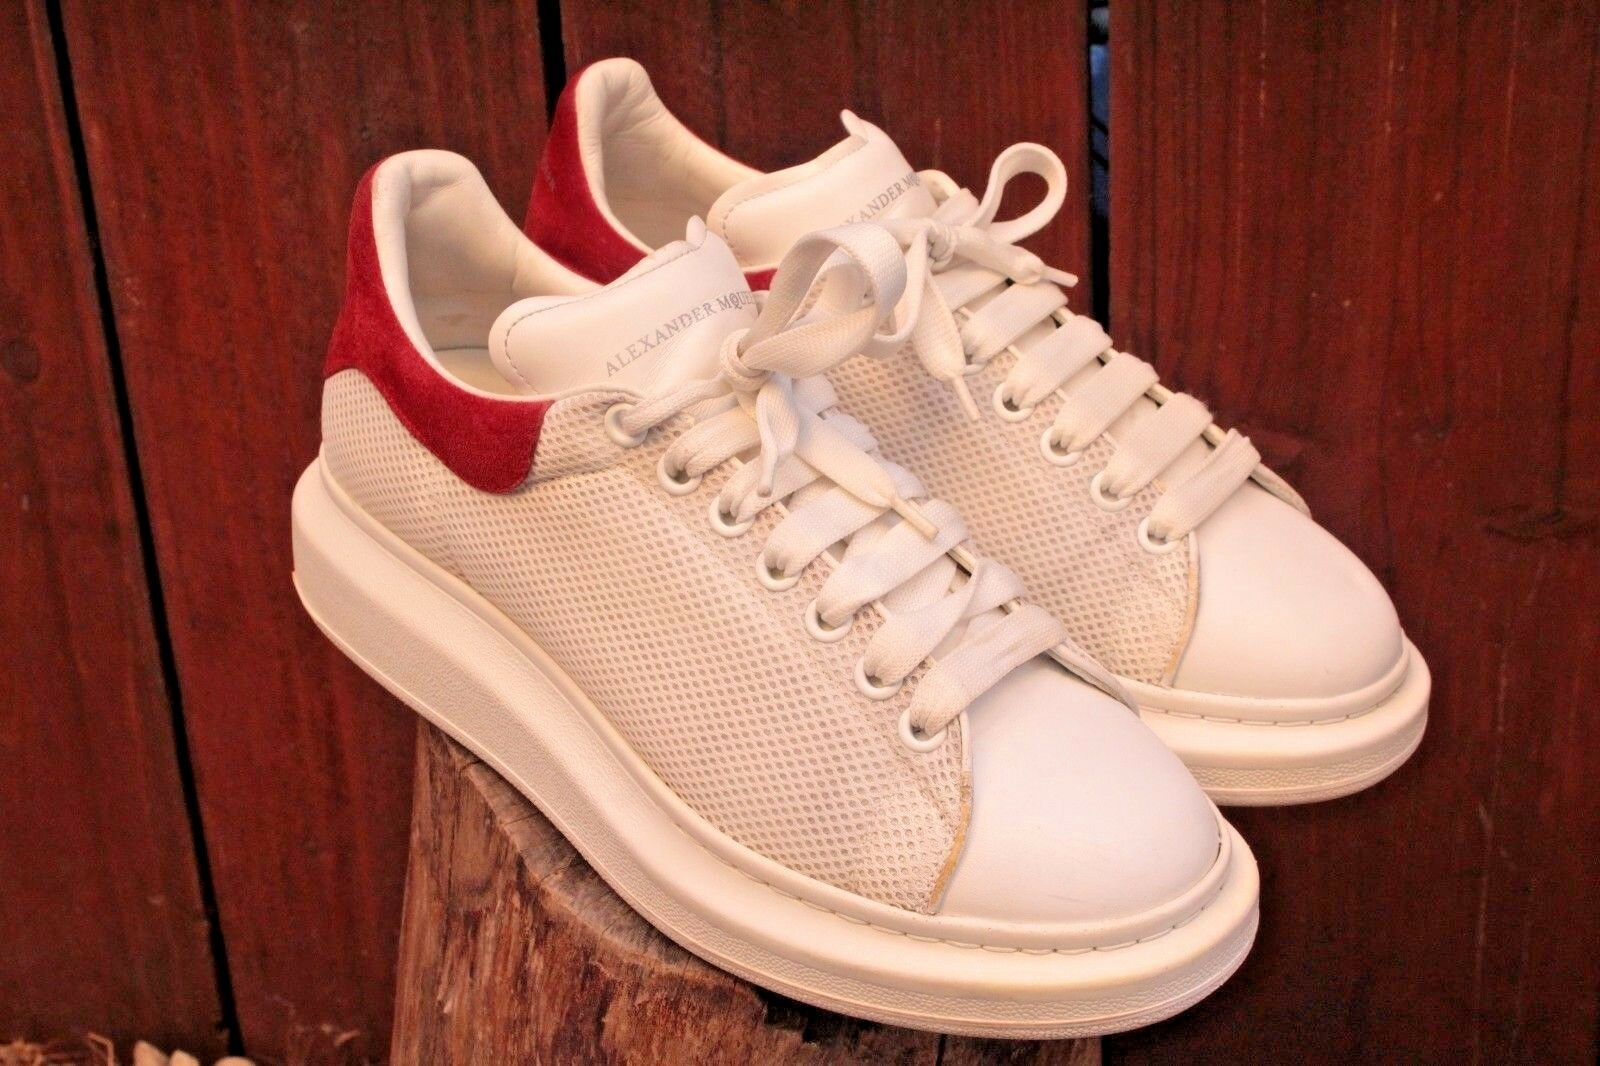 Mens Alexander Mcqueen Oversized Sneakers Shoes White Size 10 Leather Triple S